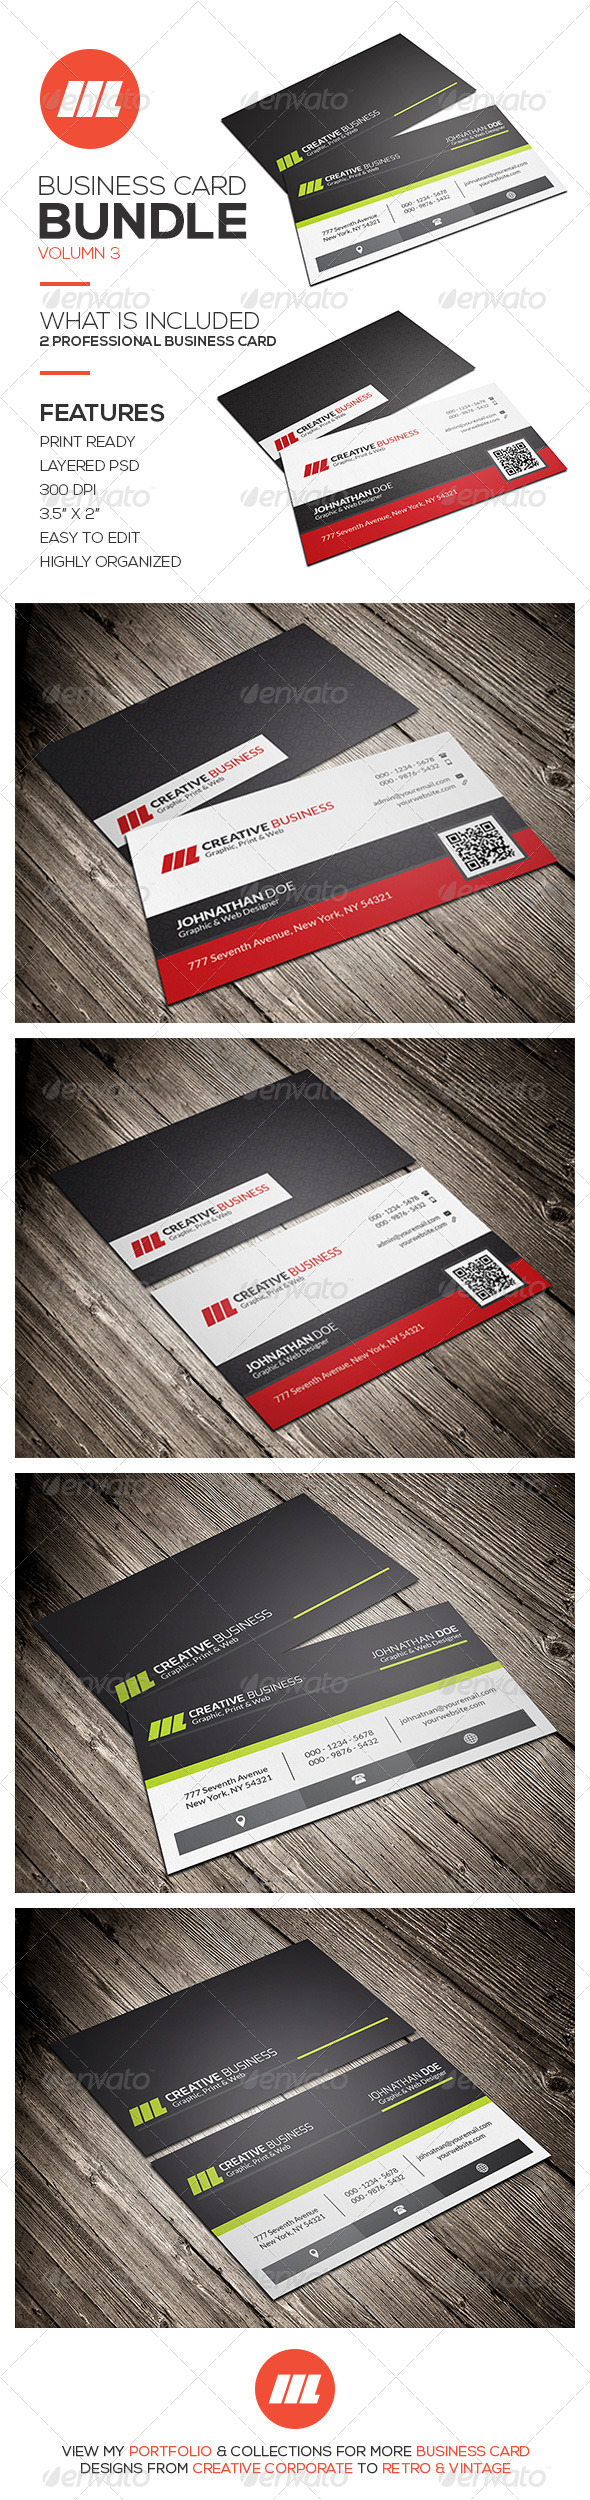 GraphicRiver Business Card Bundle Vol 3 8625200